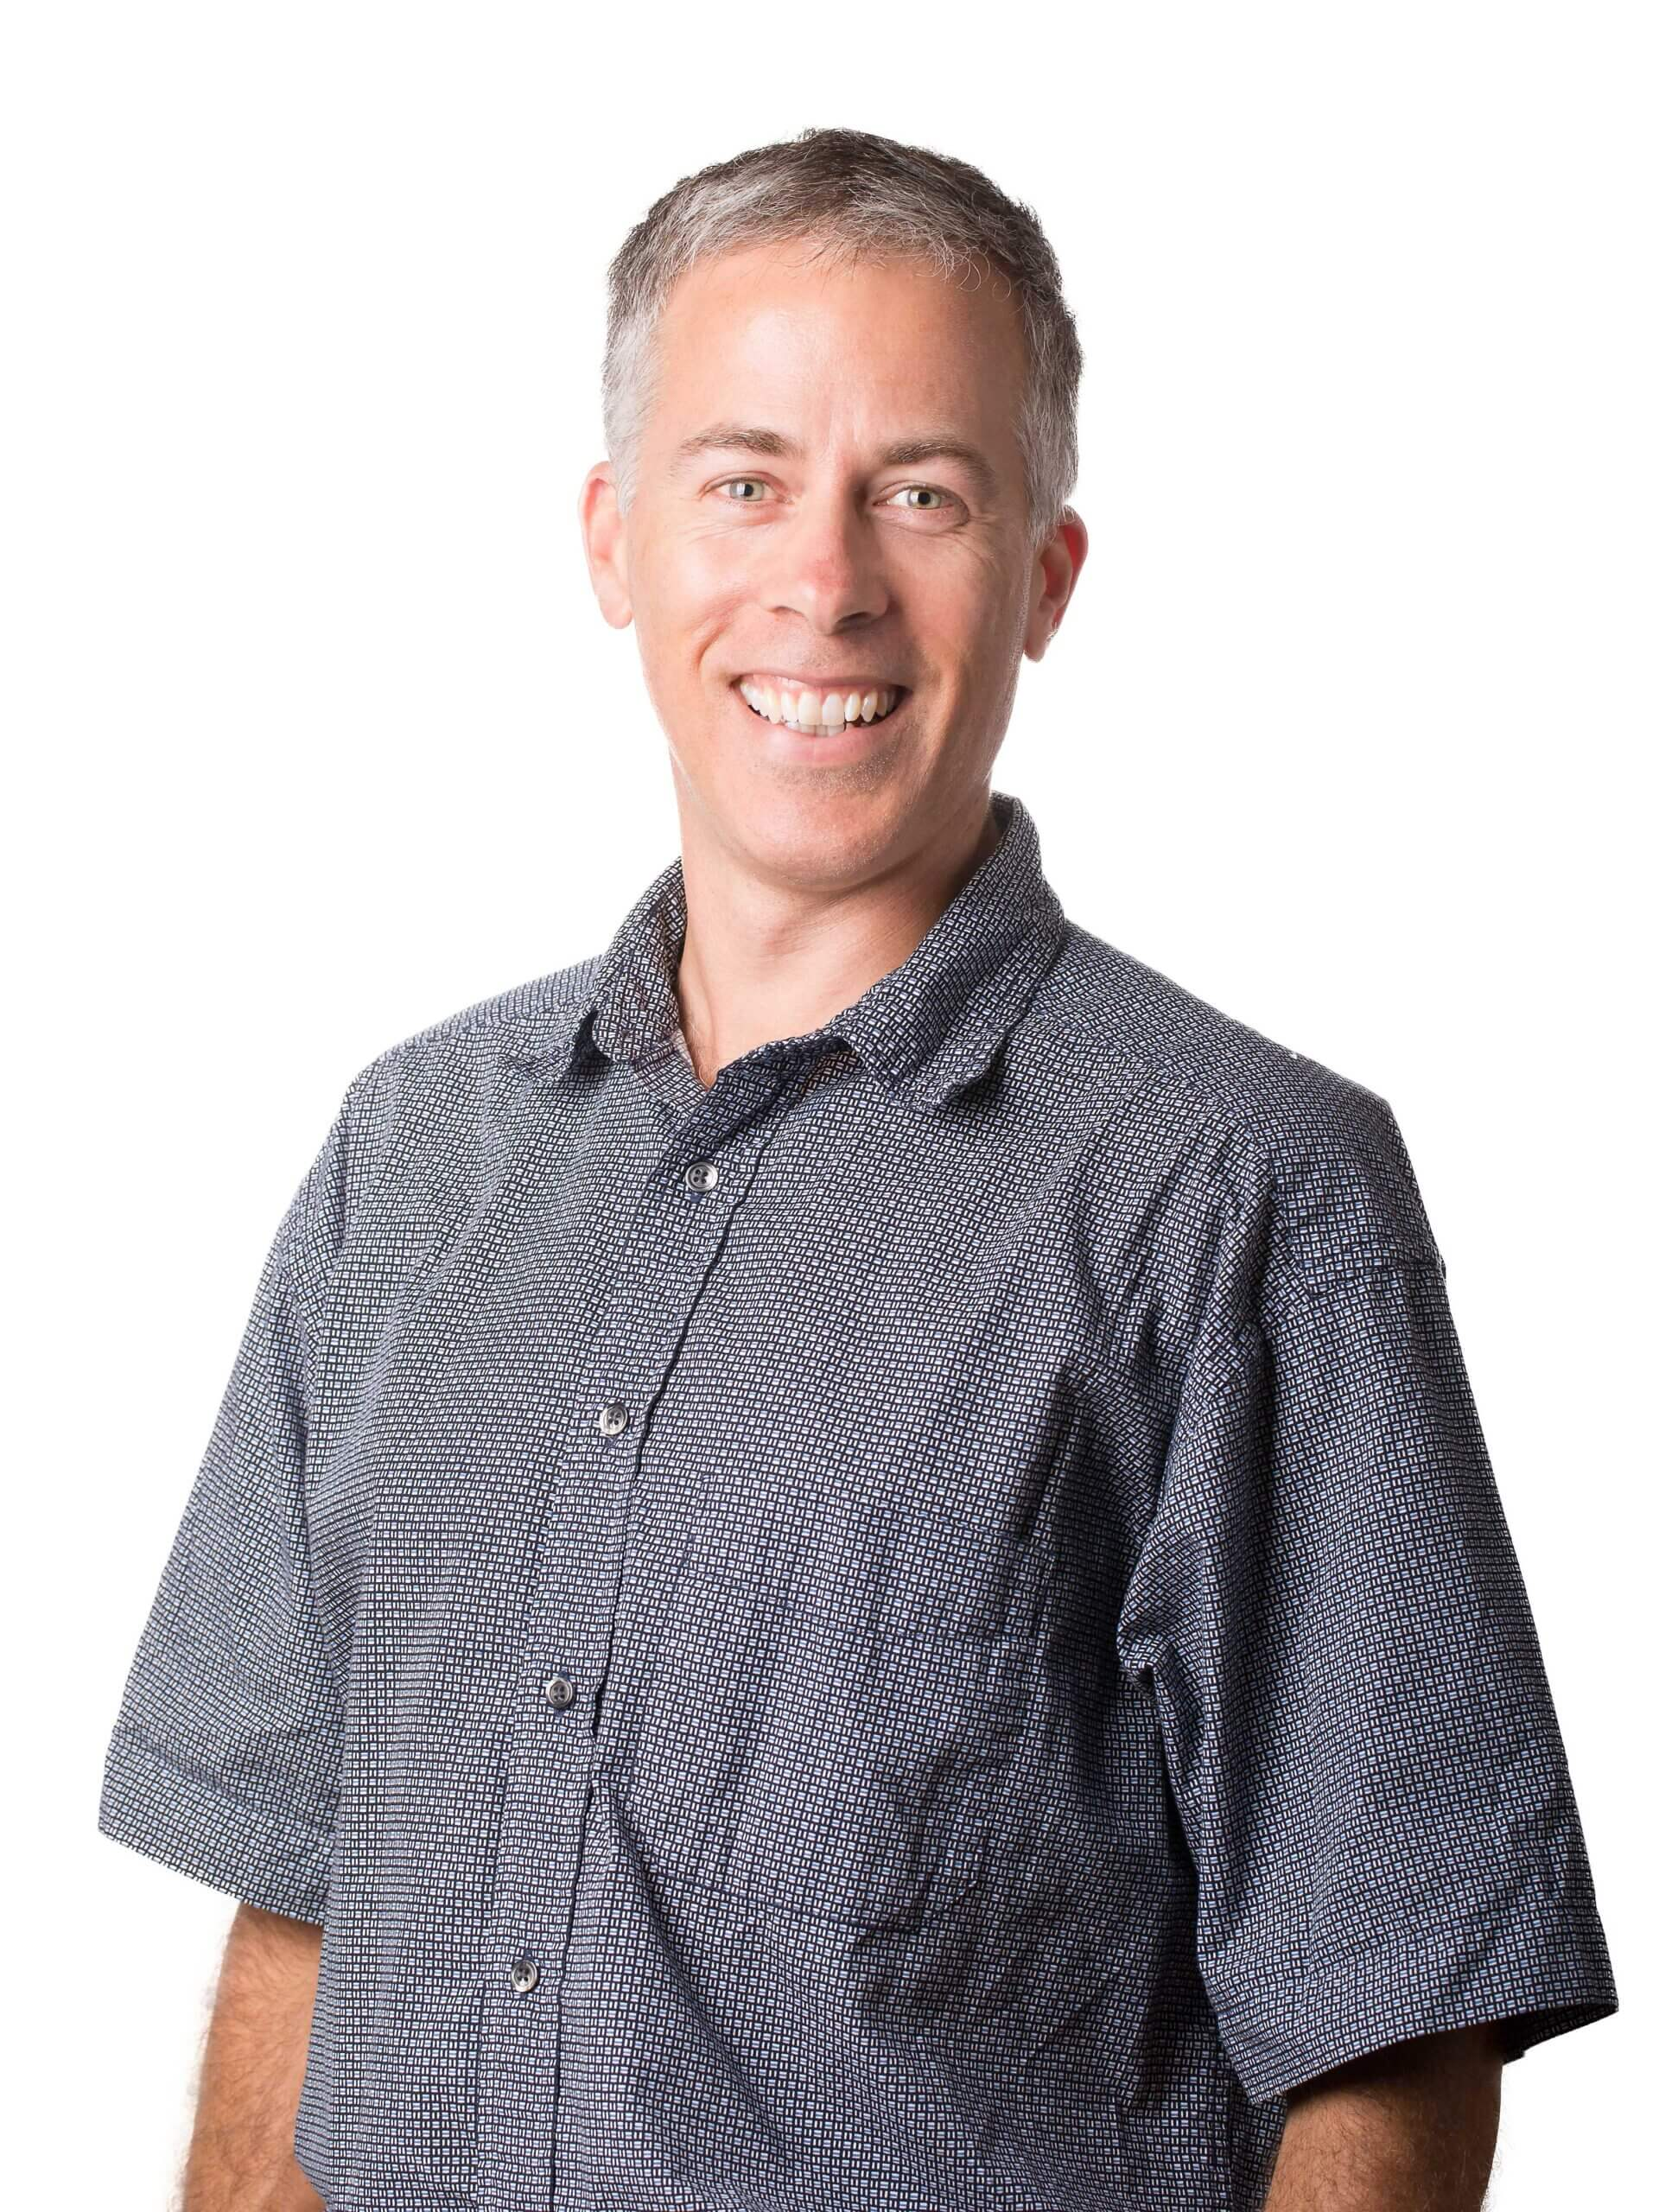 Andy MacInnis - technical instructor